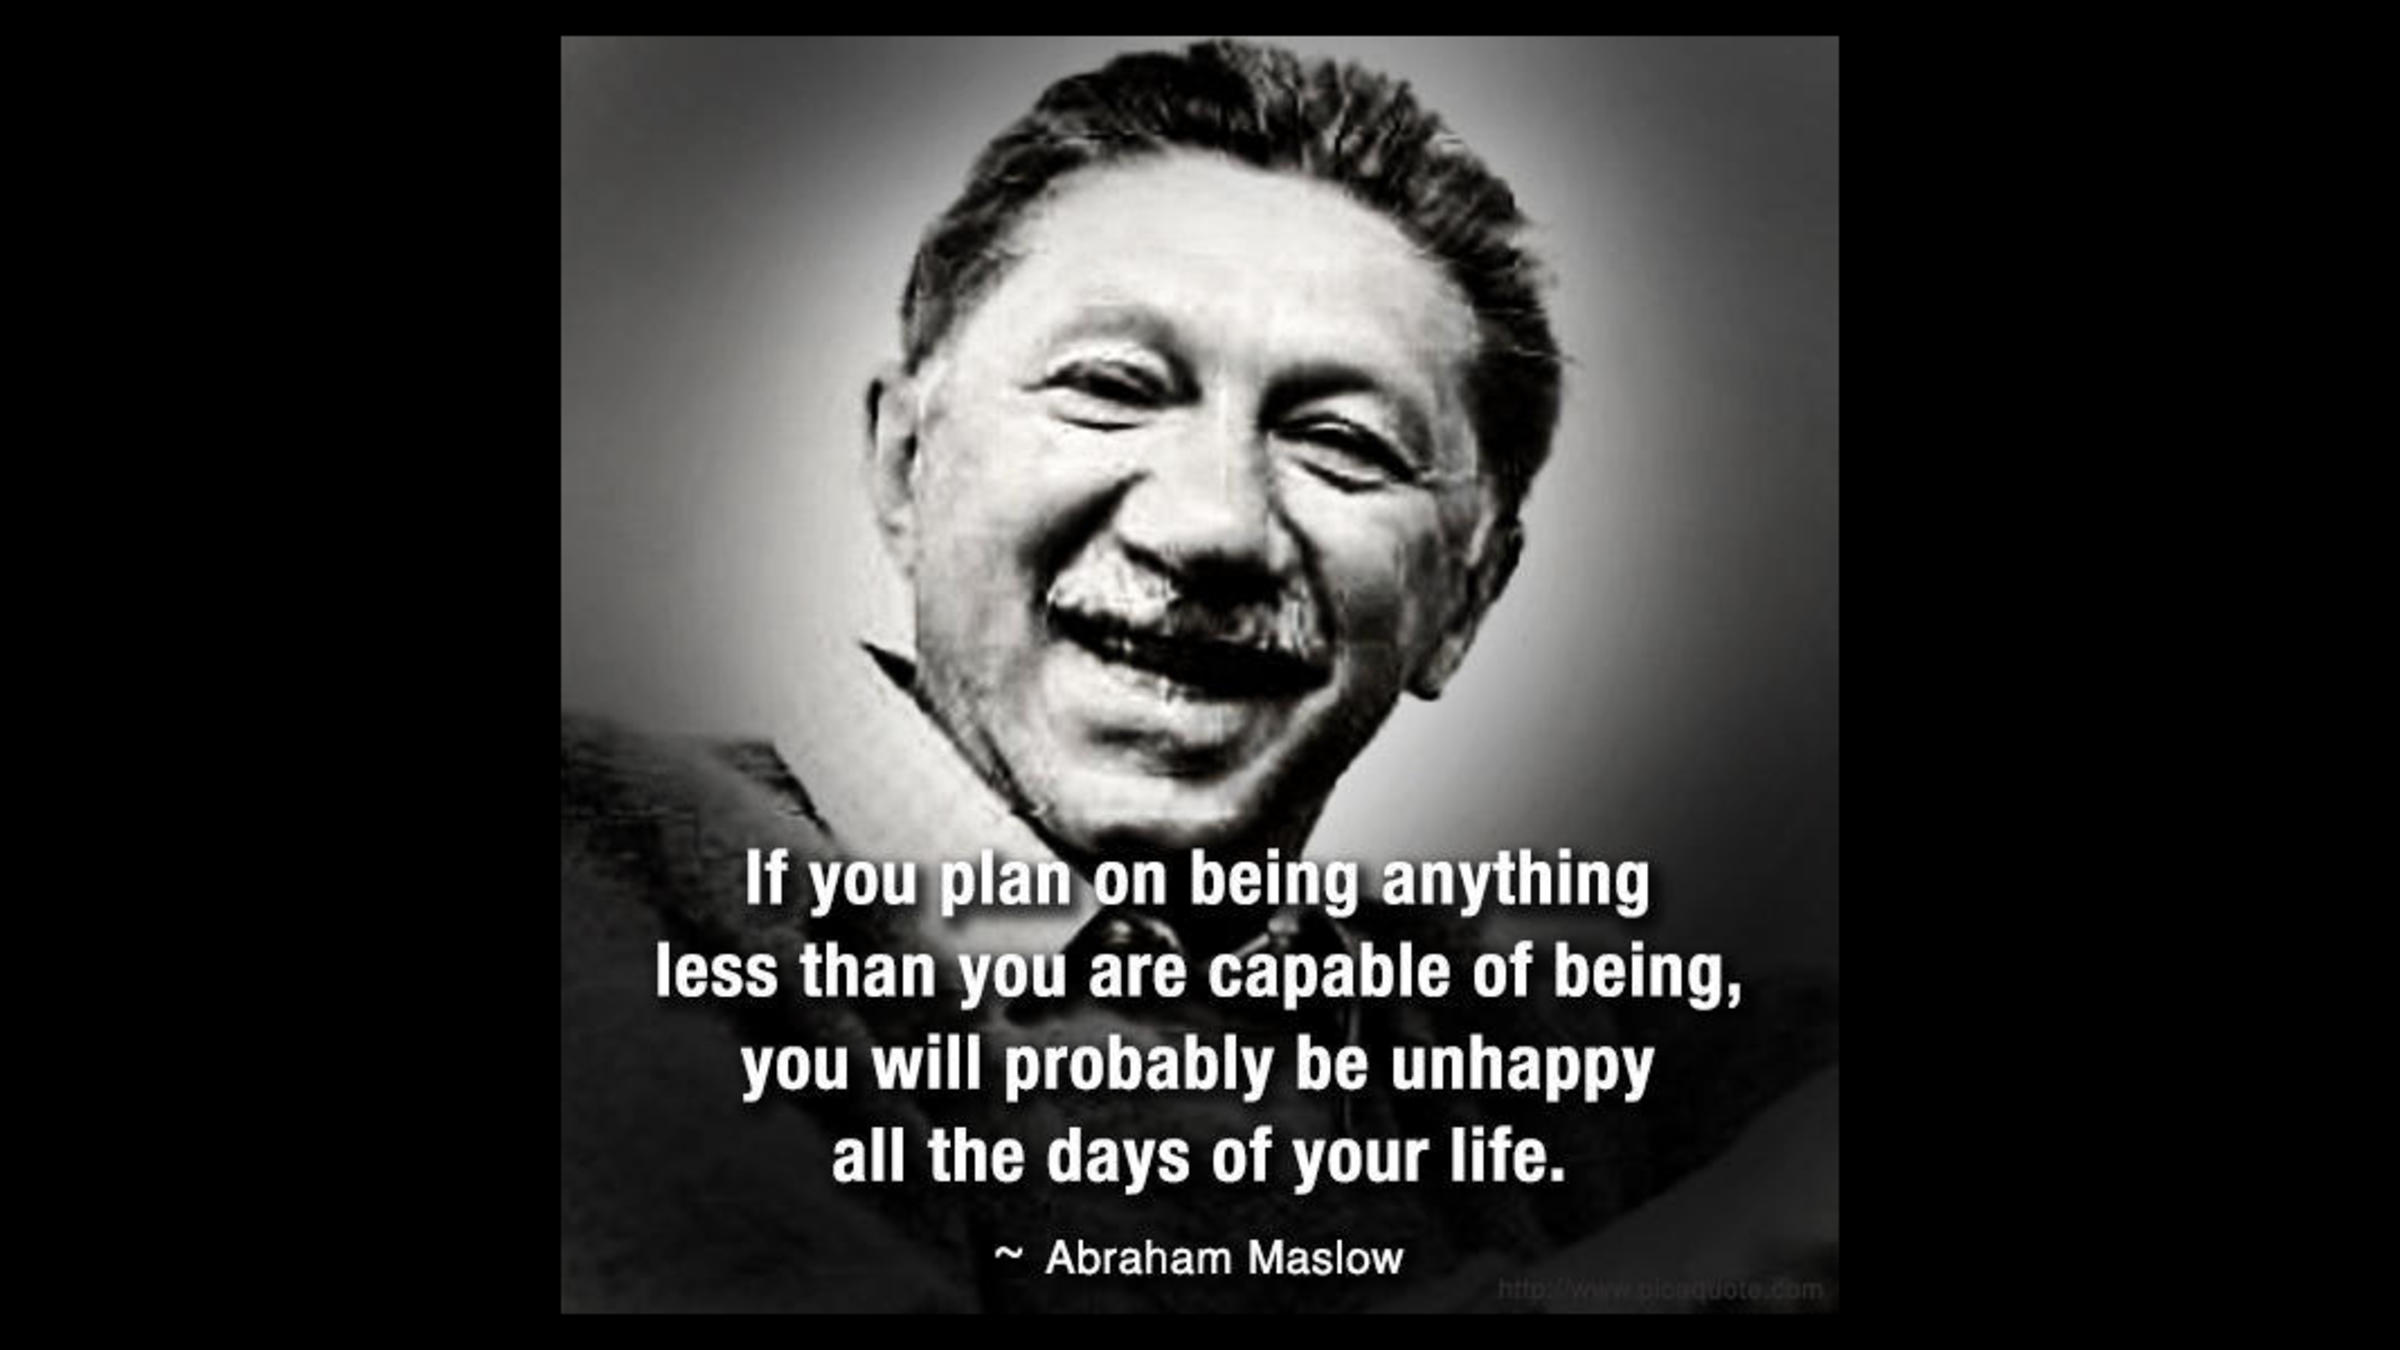 """abraham maslow biography and theory In his seminal work """"motivation and personality, abraham maslow wrote: """"the  scientist who is also something of a poet, philosopher, and even."""